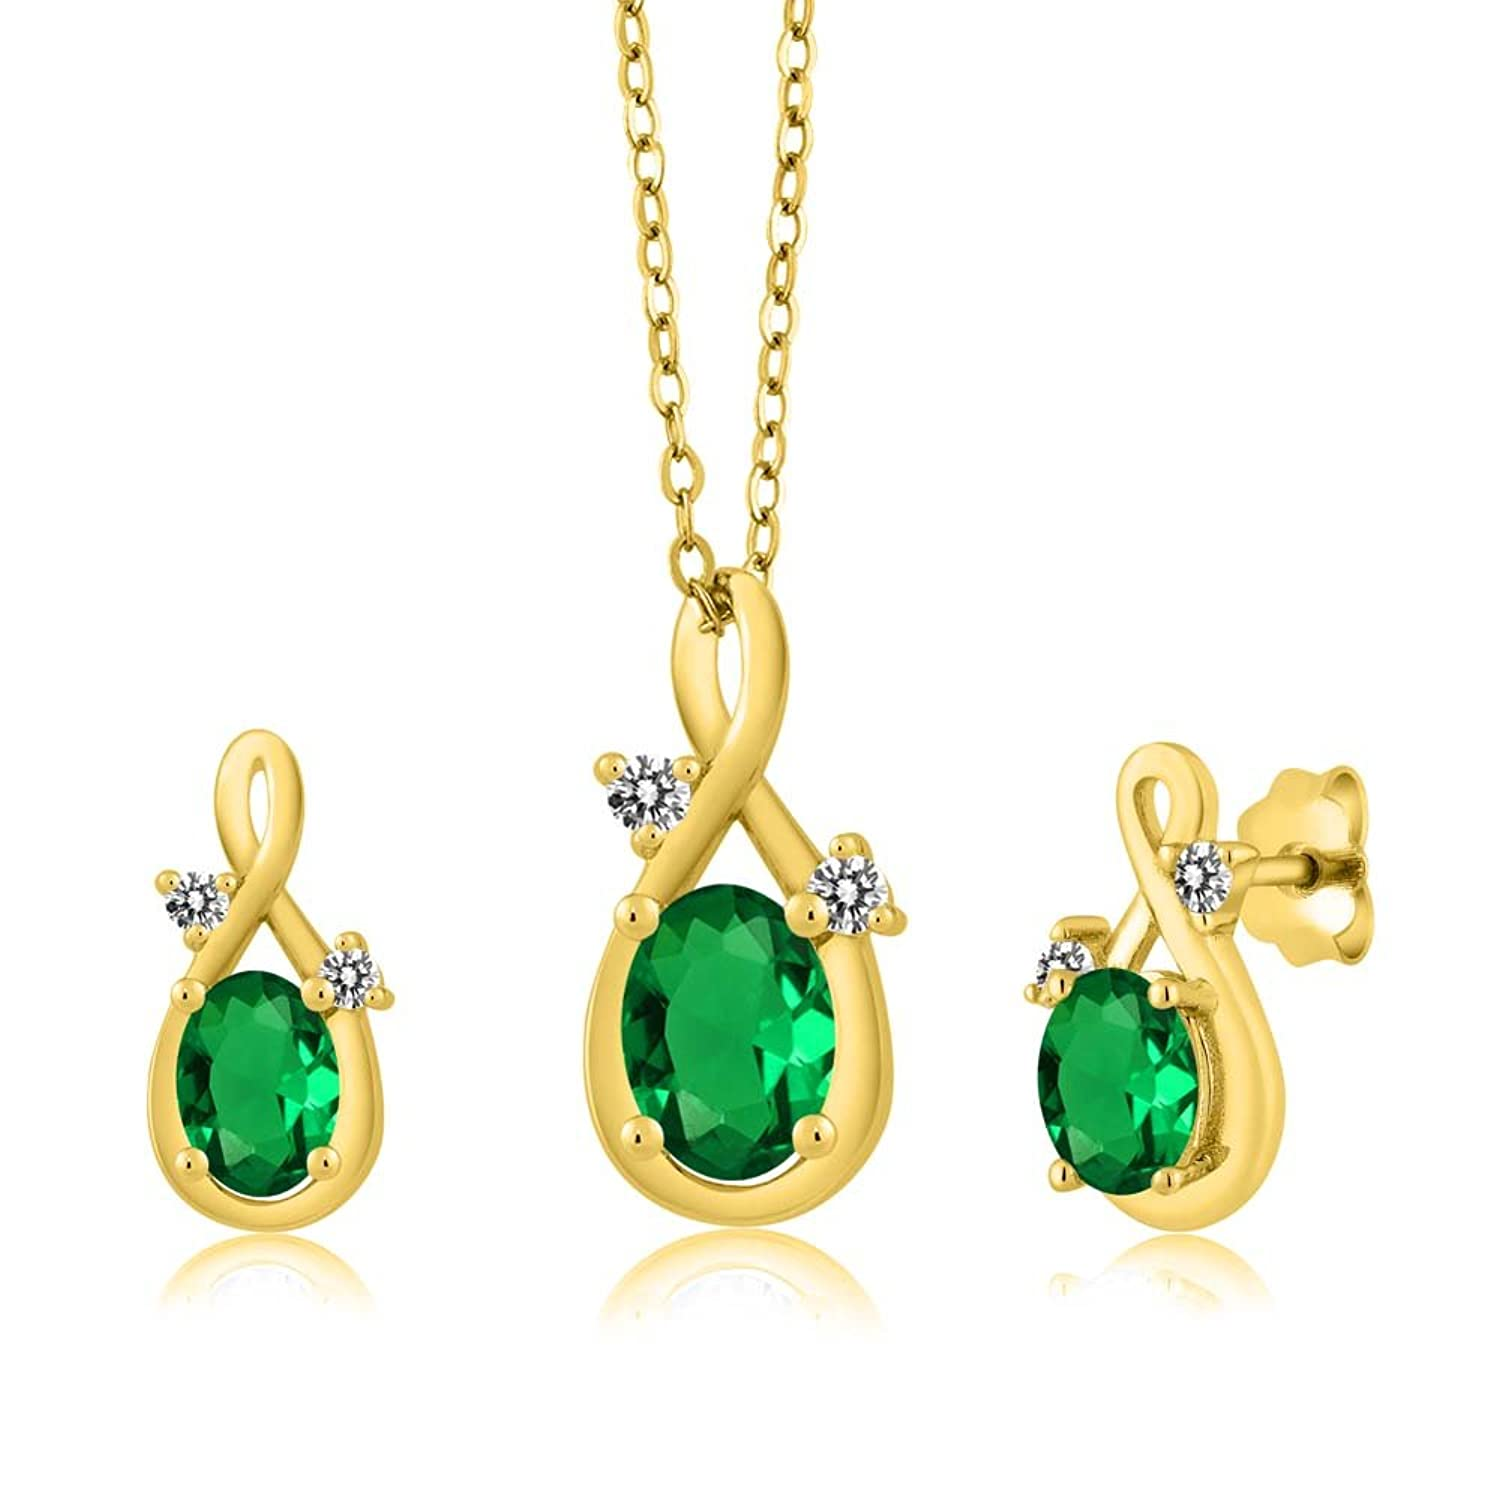 1.50 Ct Oval Green Simulated Emerald 14K Yellow Gold Pendant Earrings Set